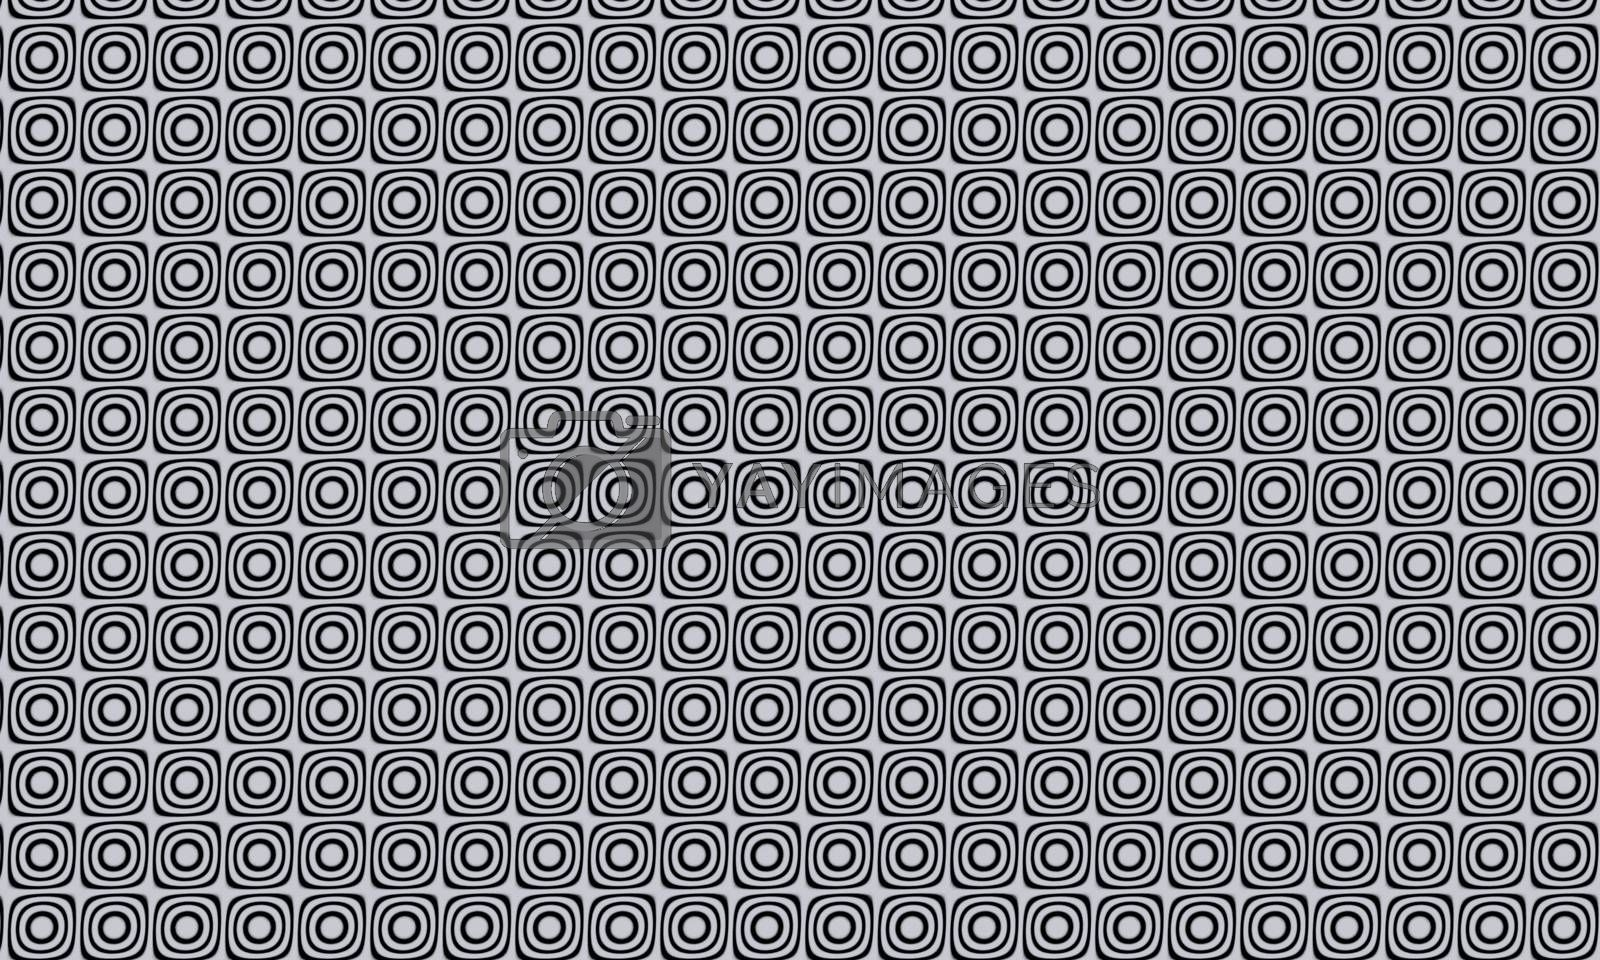 Black and white abstract circle pattern on white background use for  background and wallpaper. 3D software rendering.